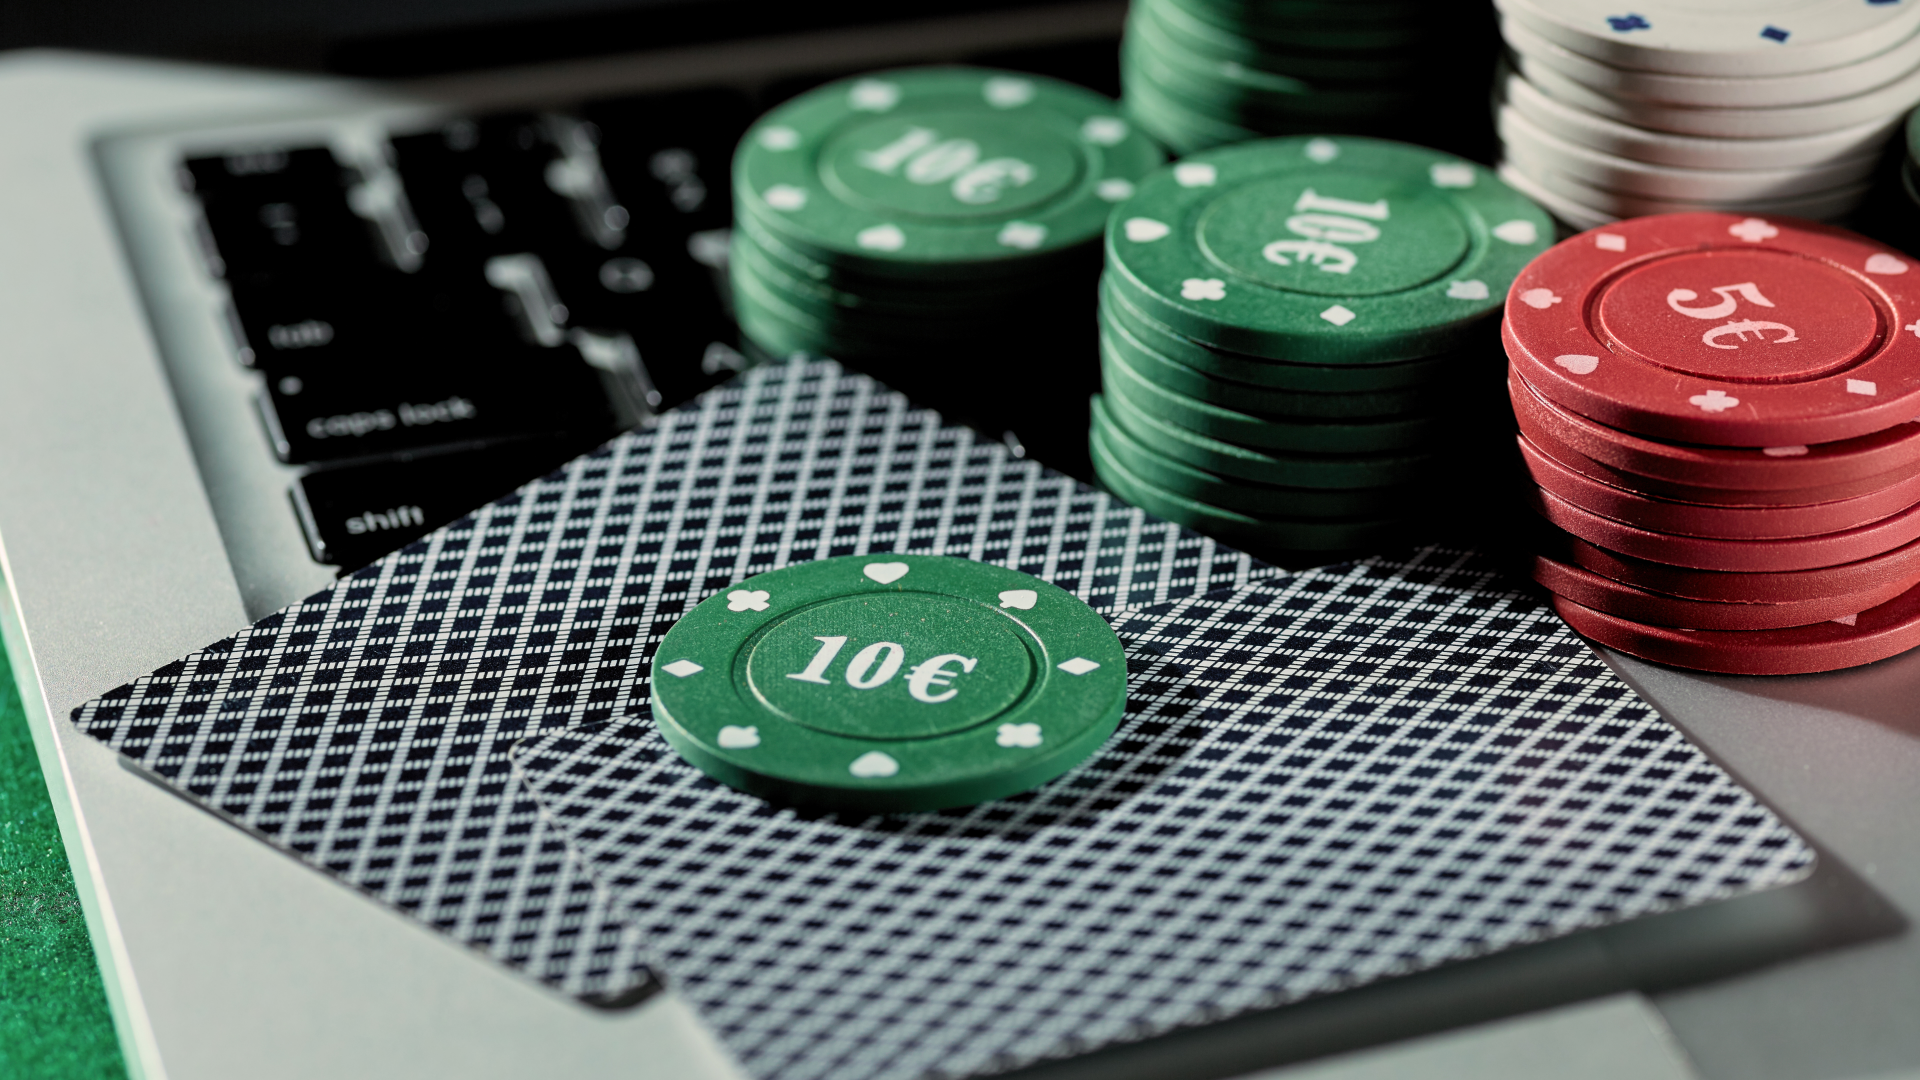 https://www.groundlabs.com/wp-content/uploads/2020/09/Don't-Roll-The-Dice-on-Online-Casino-Security-.png